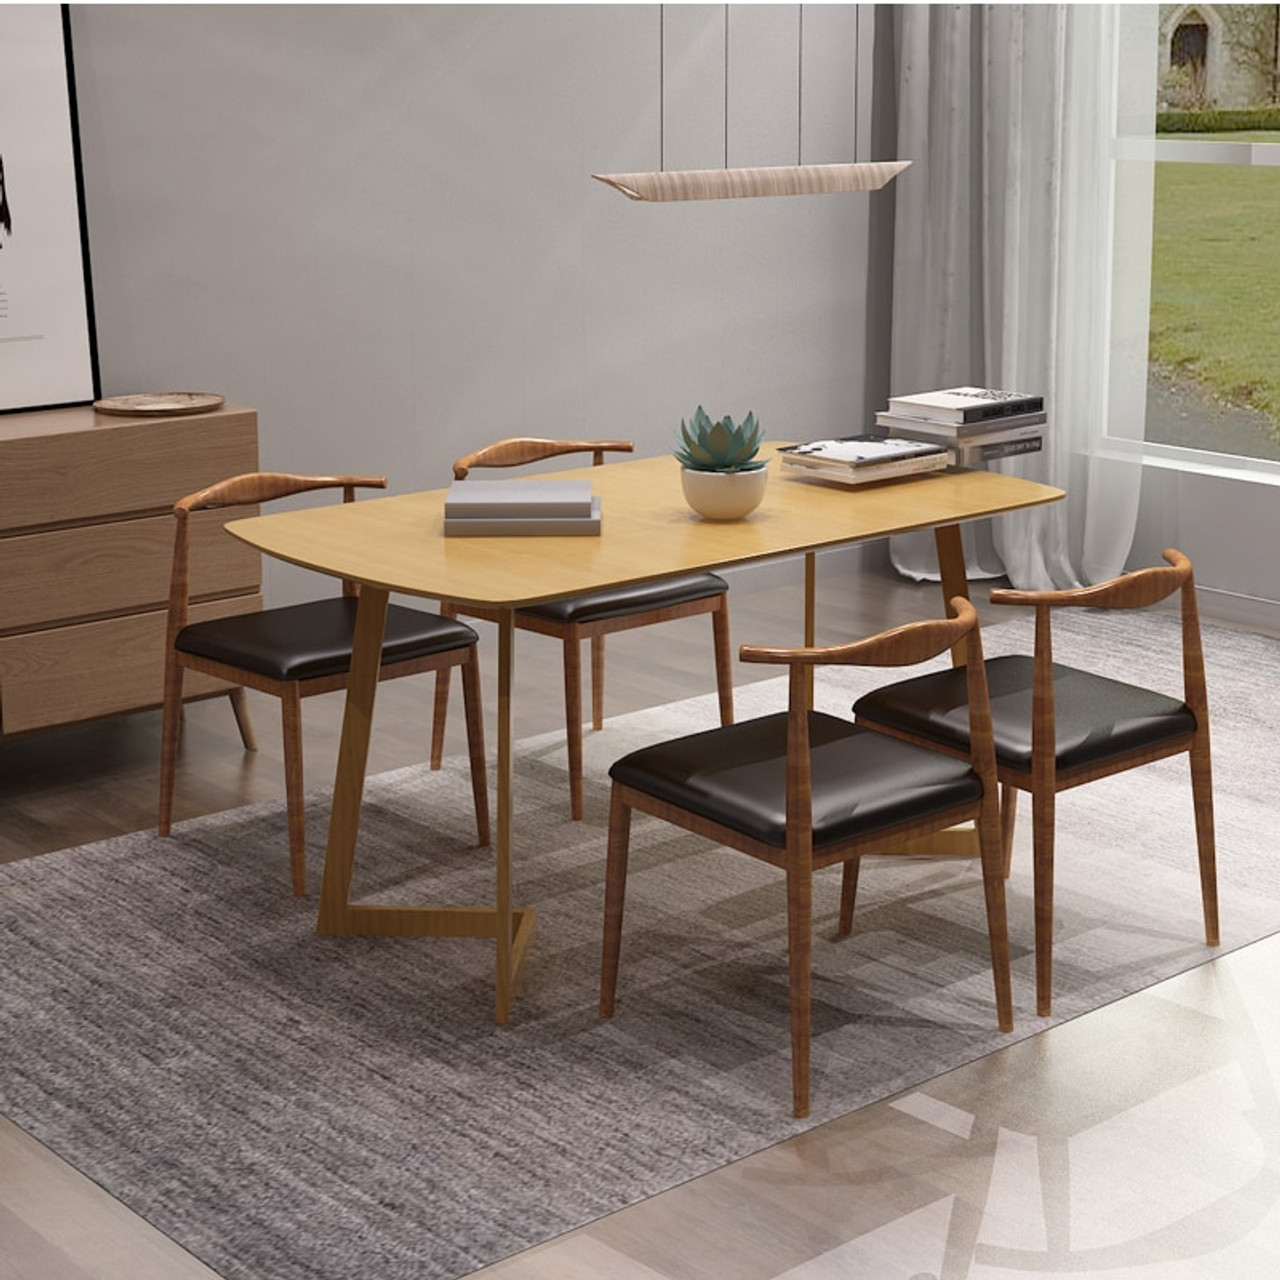 - Dining Table Set Folding Dining Room Table Set - Furnisima